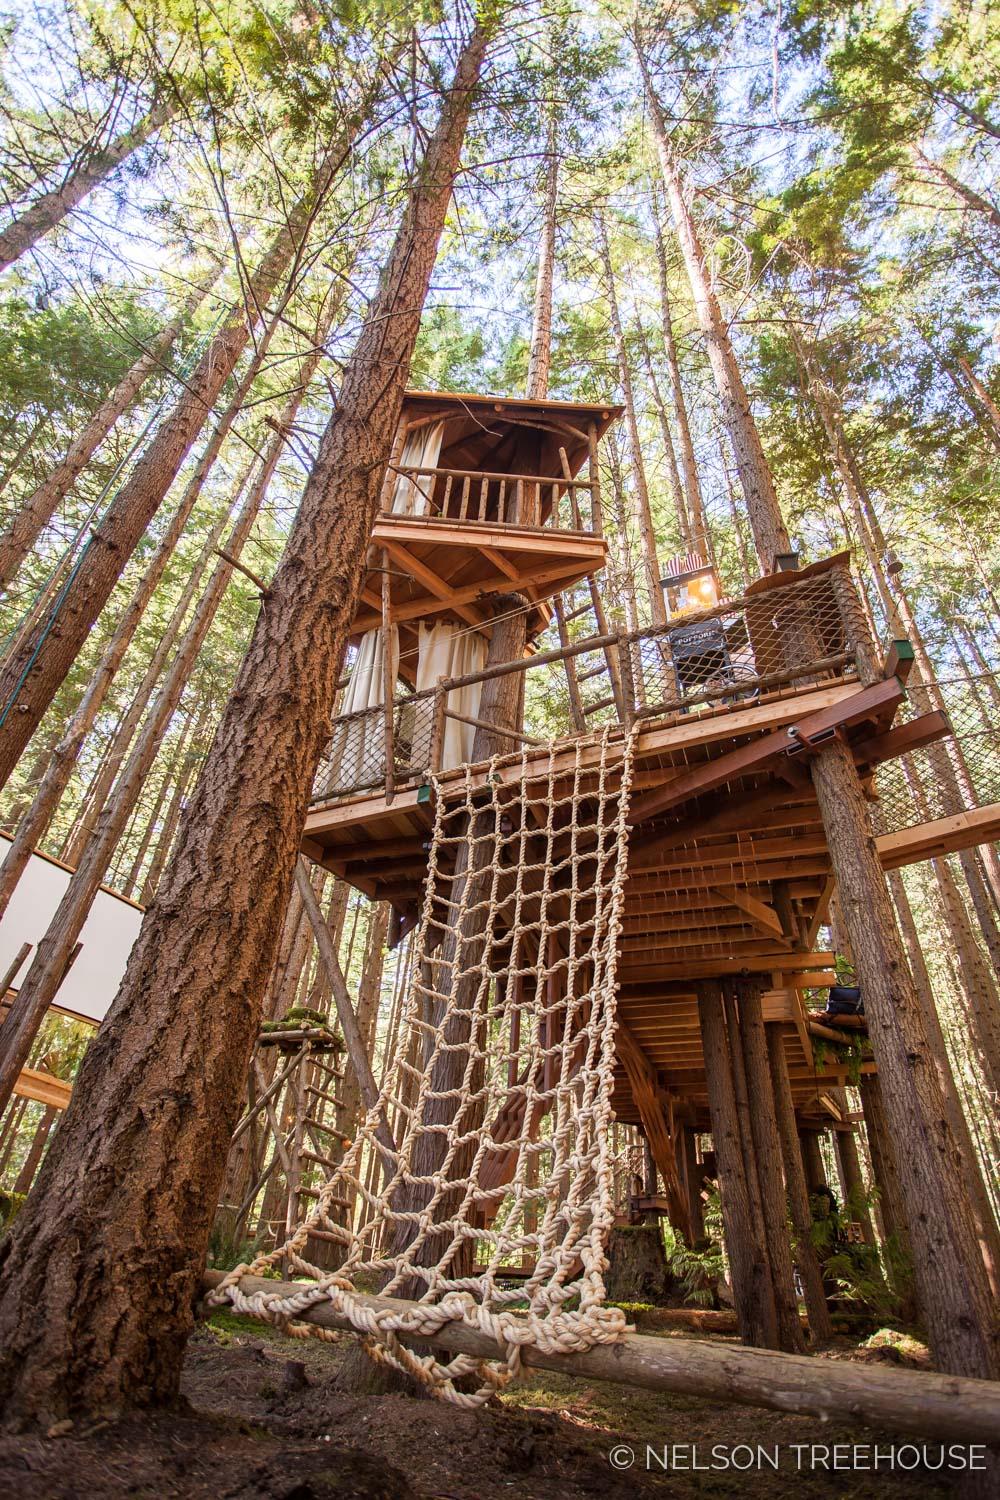 Treetop-Movie-Theater-2018-Nelson-Treehouse-349-HDR.jpg